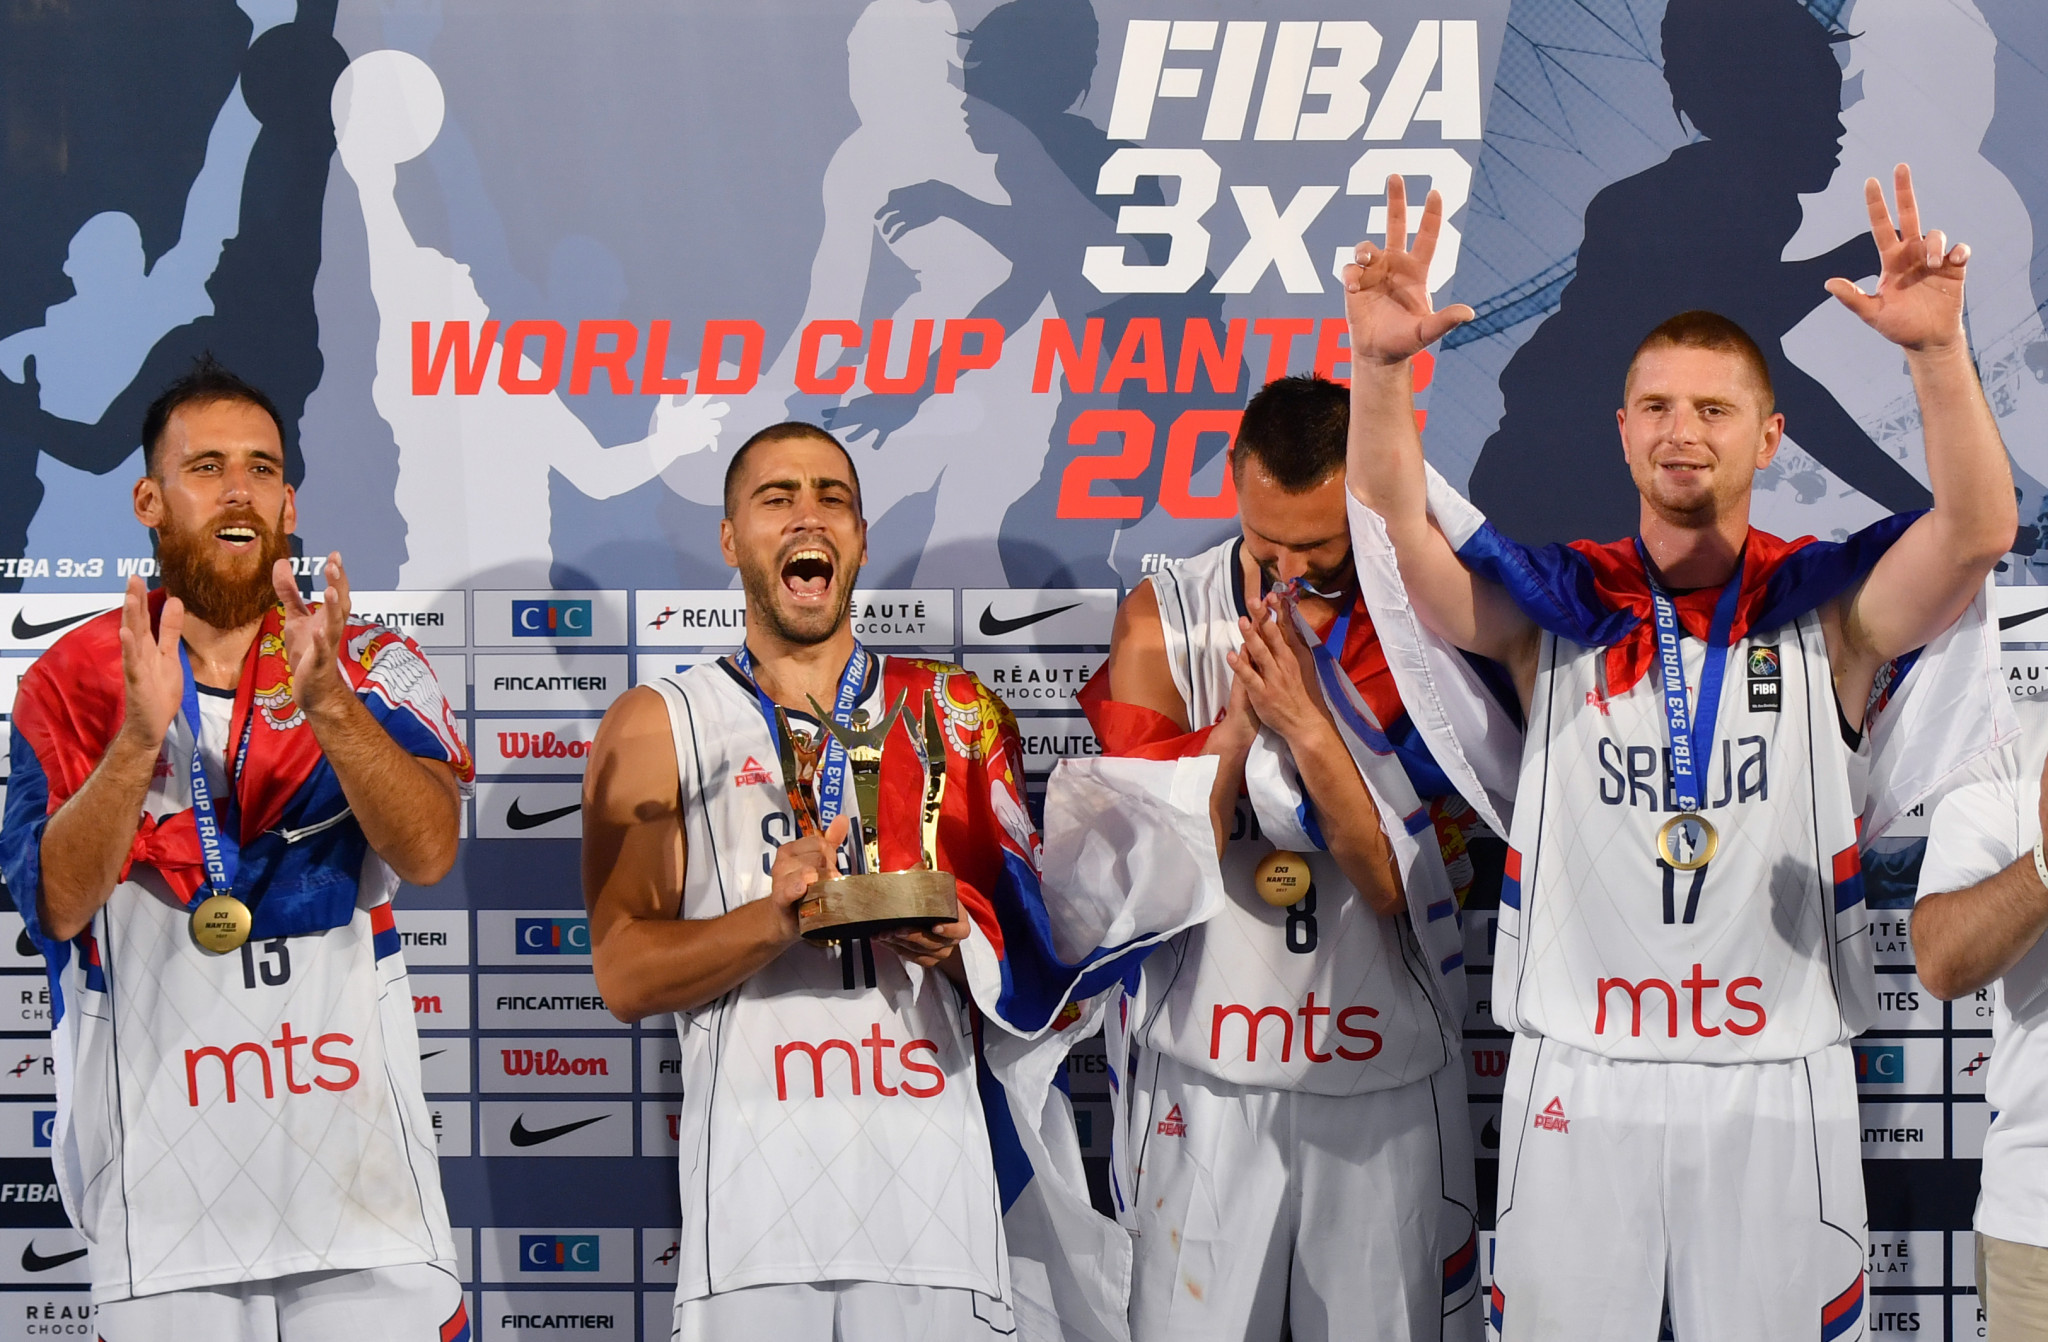 Serbia are the ones to beat in the men's FIBA 3x3 World Cup, having reached all five finals, with four victories ©Getty Images